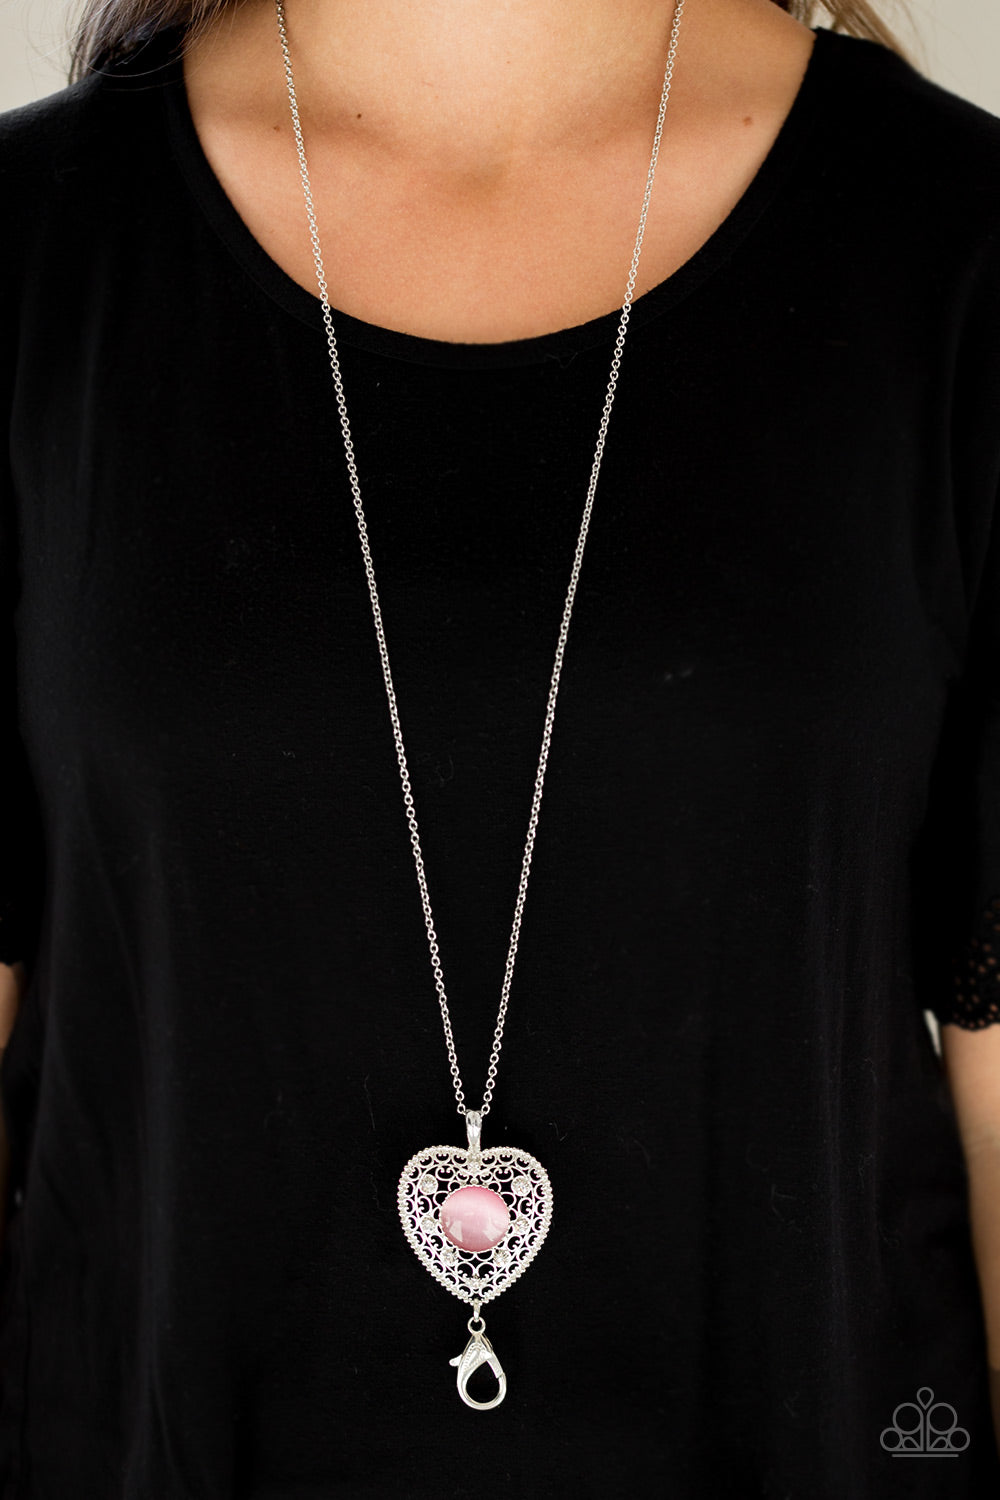 Paparazzi Accessories One Heart - Pink Lanyard Necklaces - Lady T Accessories